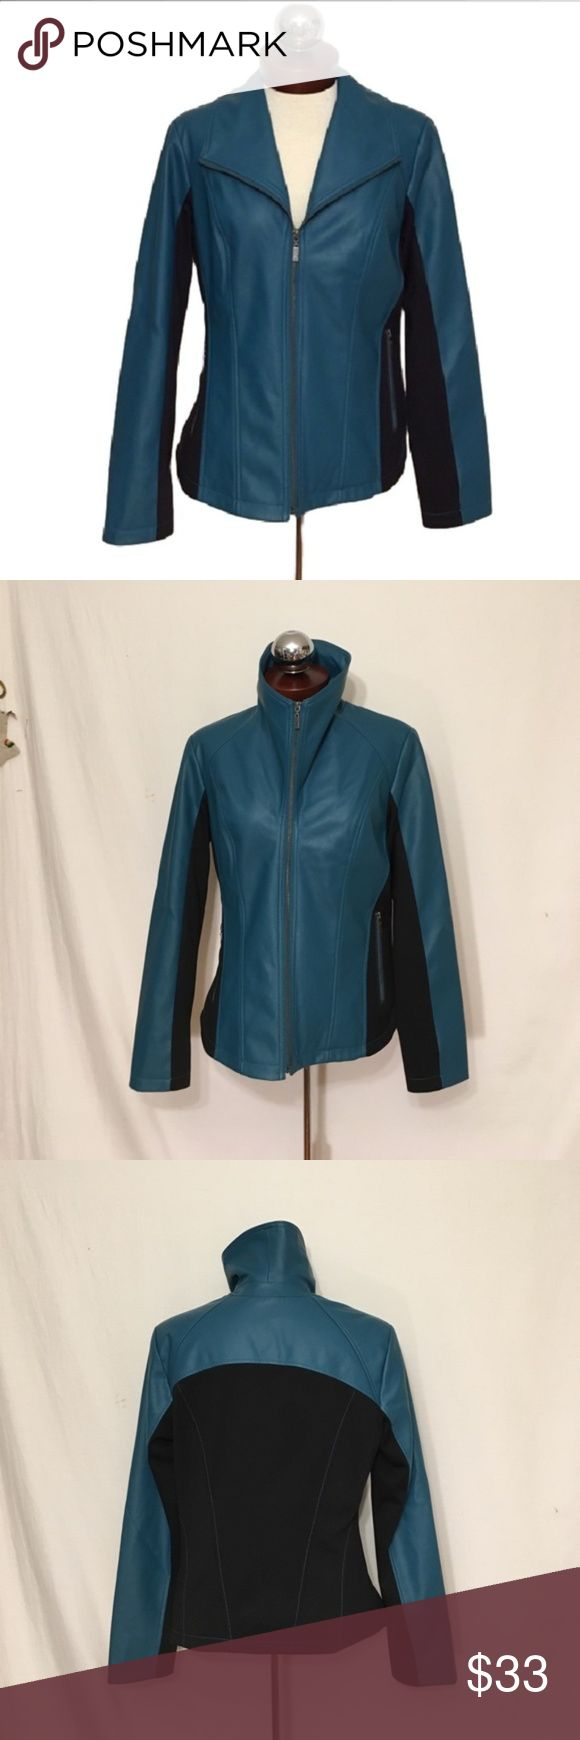 Pamela McCOY faux leather biker metro jacket Pamela McCOY faux leather biker metro jacket  SIZE S  Excellent condition!   Color is not even close and is brighter and more of a teal then Photos suggest.   Zip front magical collar.   Stretch panels at sides and rear of jacket. Fully lined. Front zip pockets.   Shoulder 16.5 bust 40 lower Hem 40 length 24 Pamela McCoy Jackets & Coats